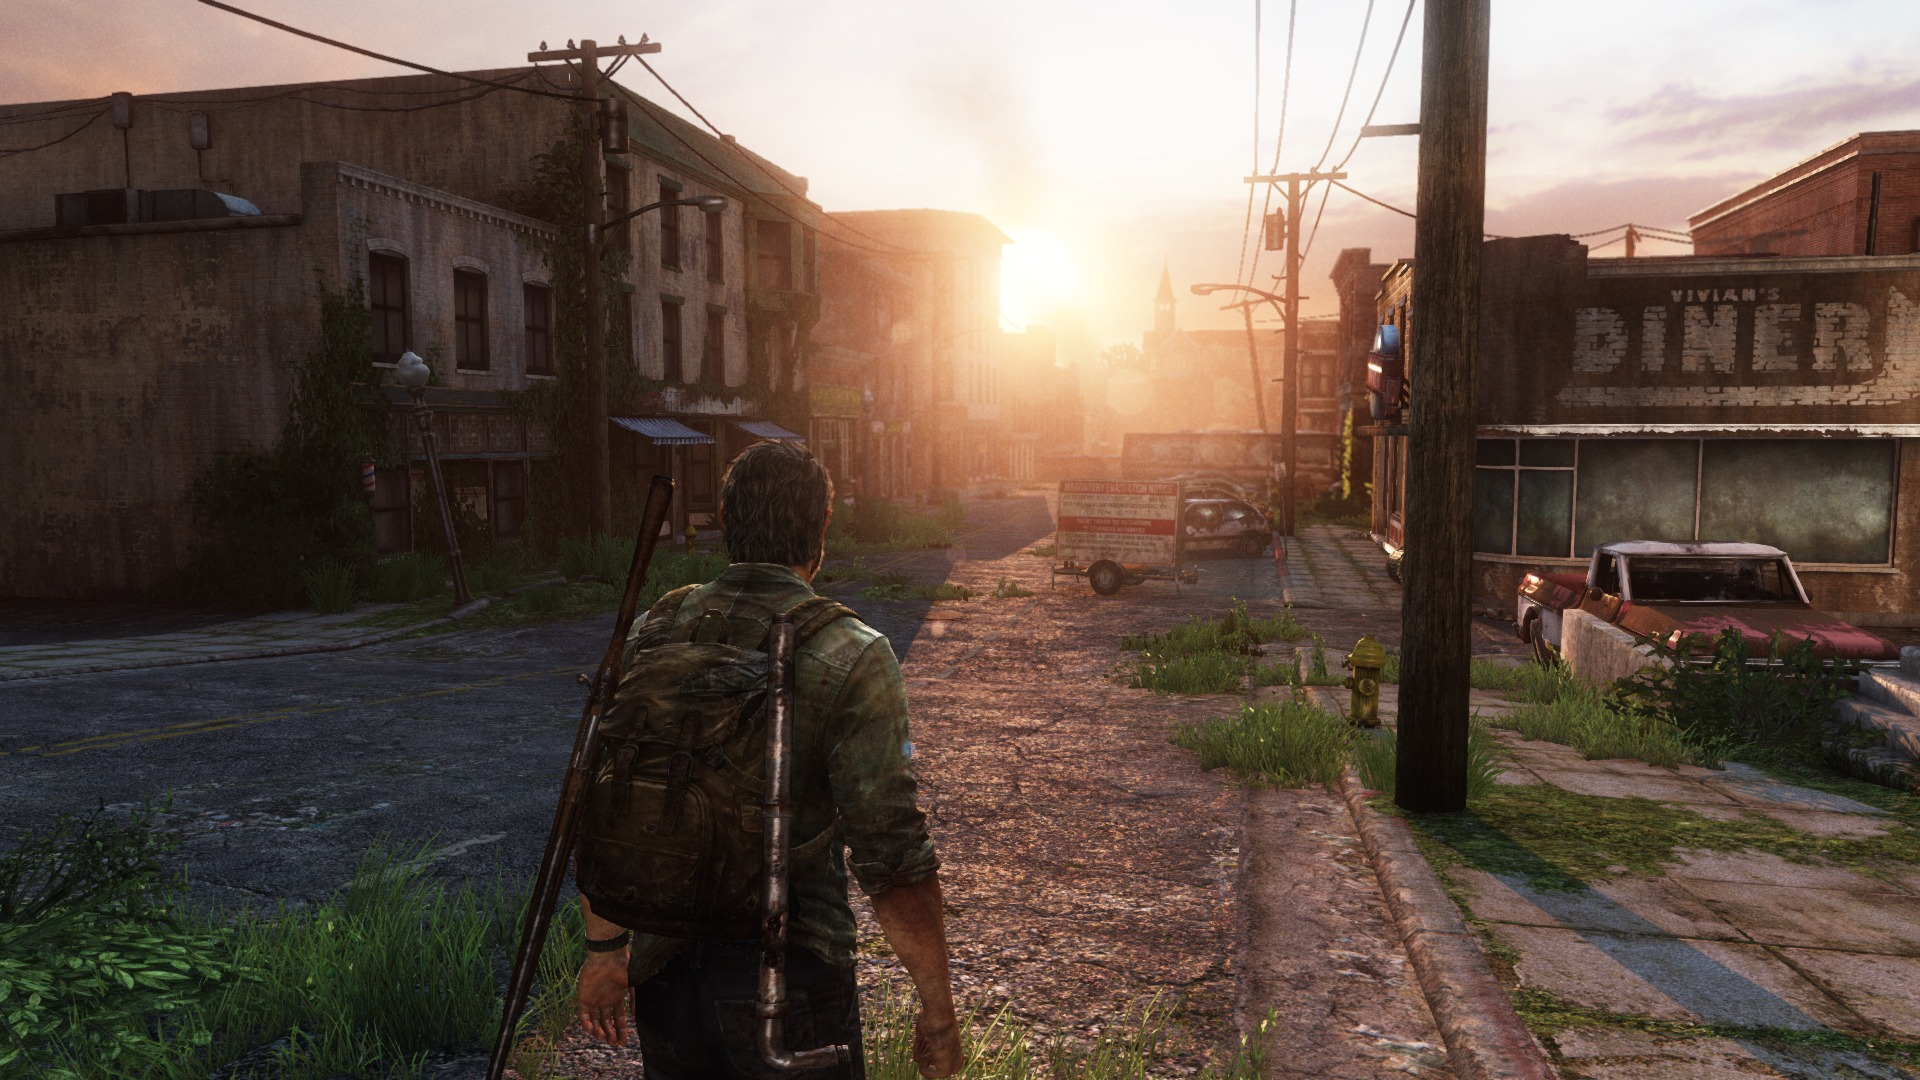 3d Wallpaper App Download The Last Of Us Remastered Details Launchbox Games Database